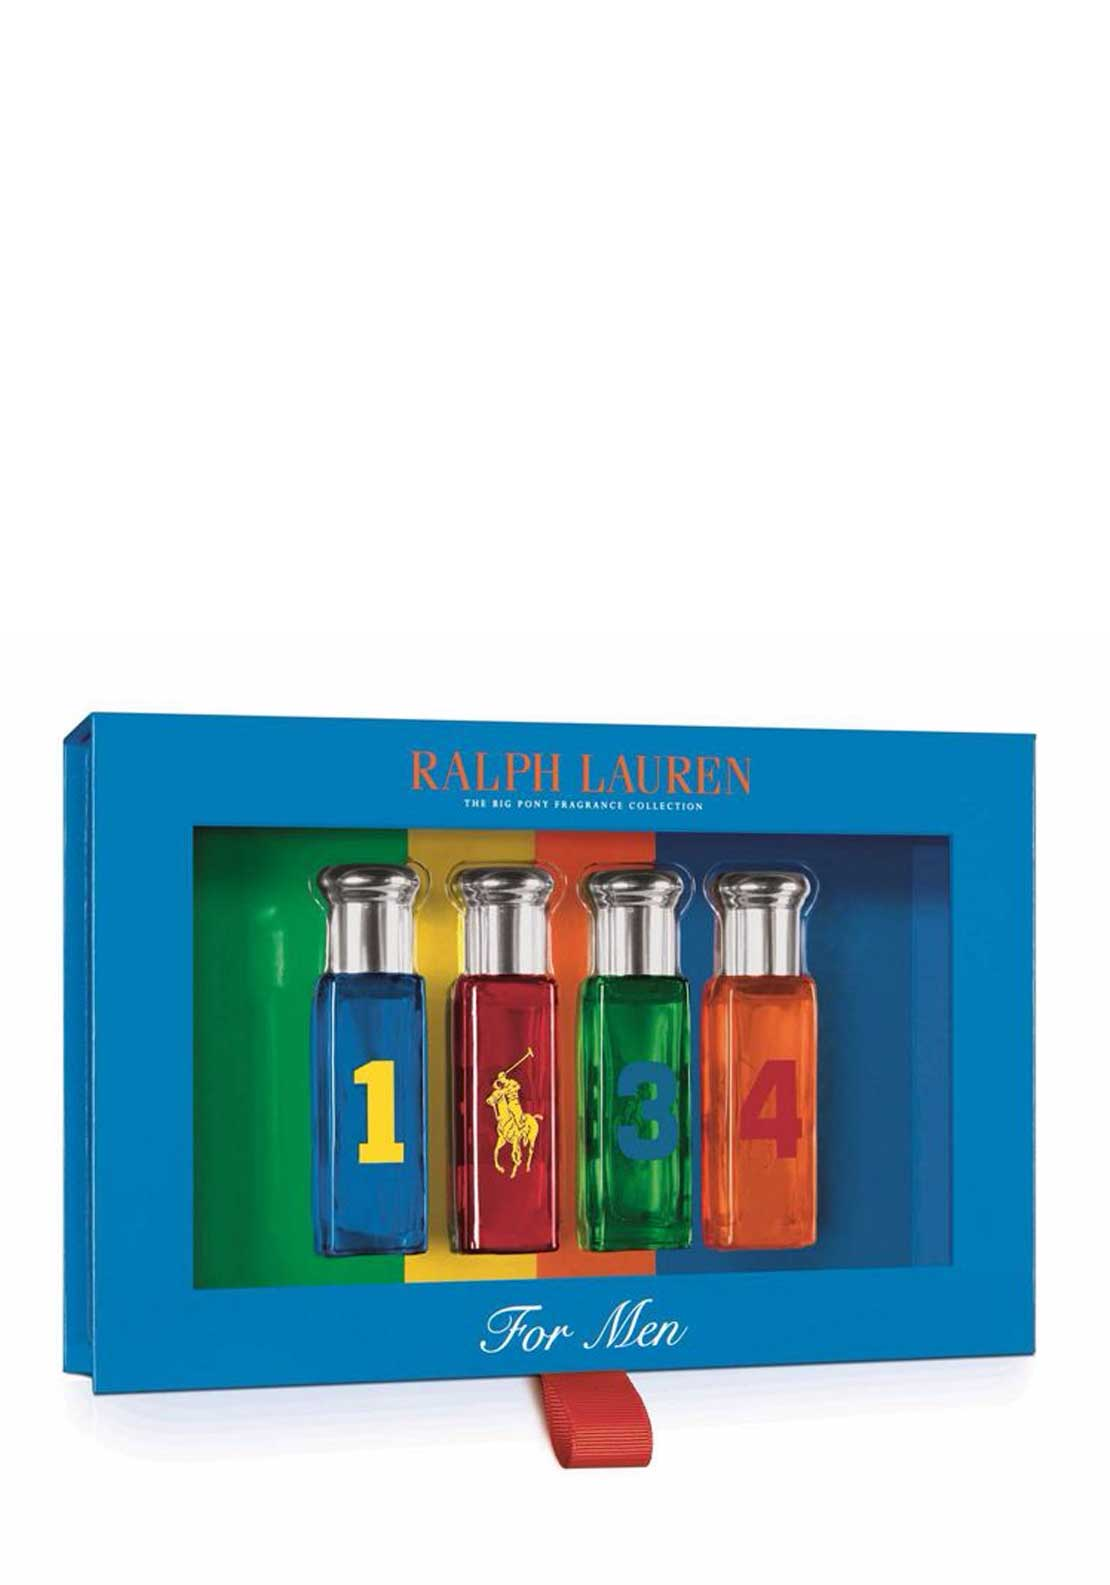 Ralph Lauren The Big Pony Fragrance Collection For Men, 40ml